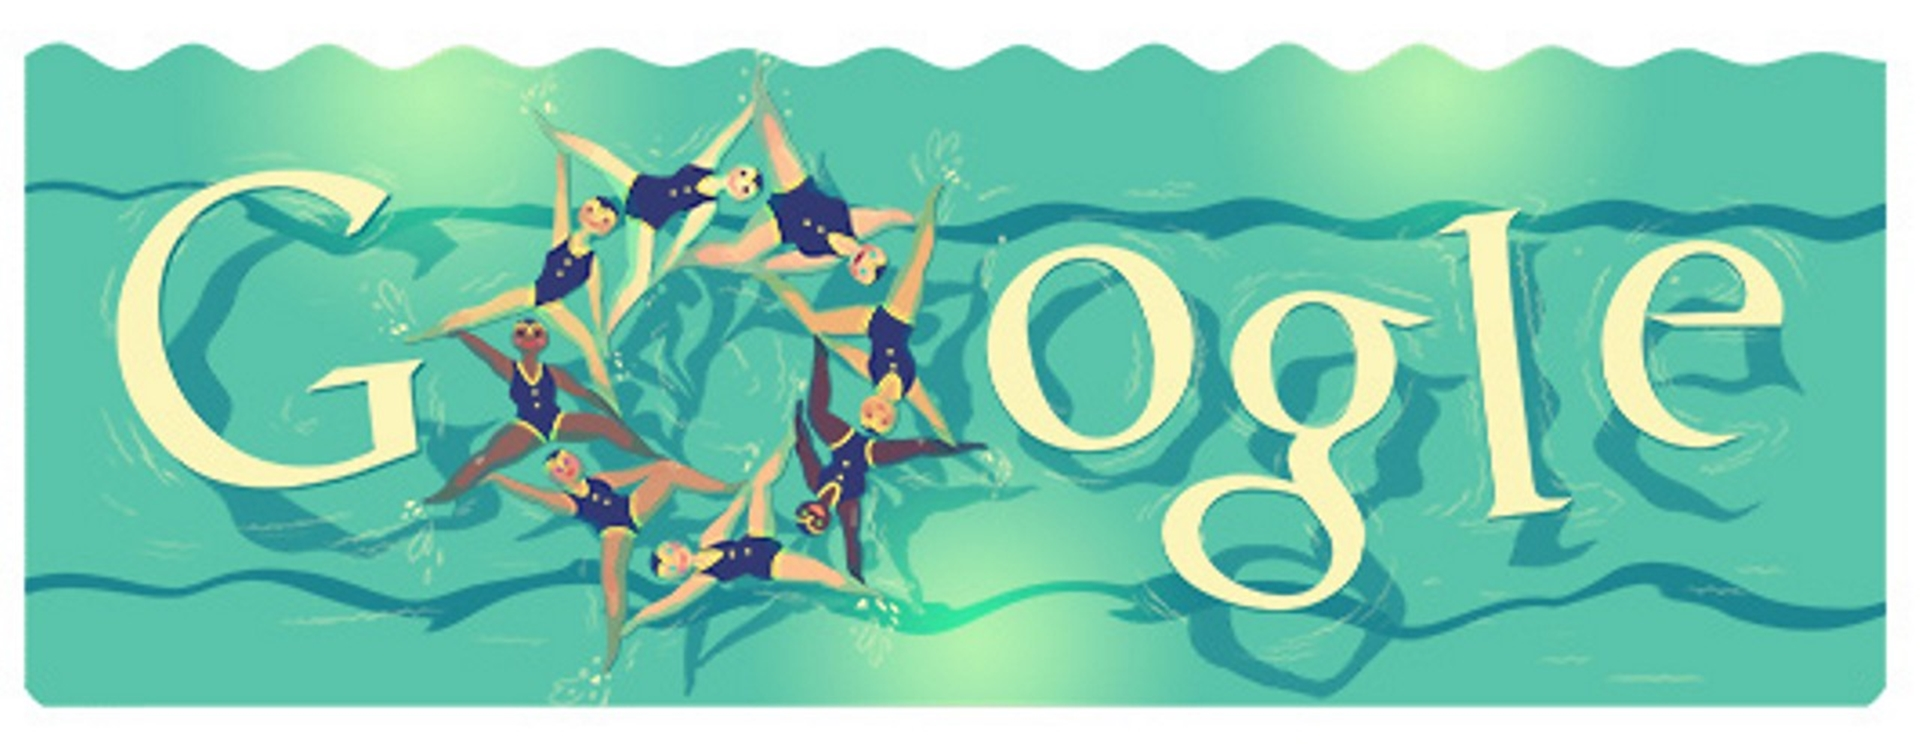 London 2012 synchronised swimming